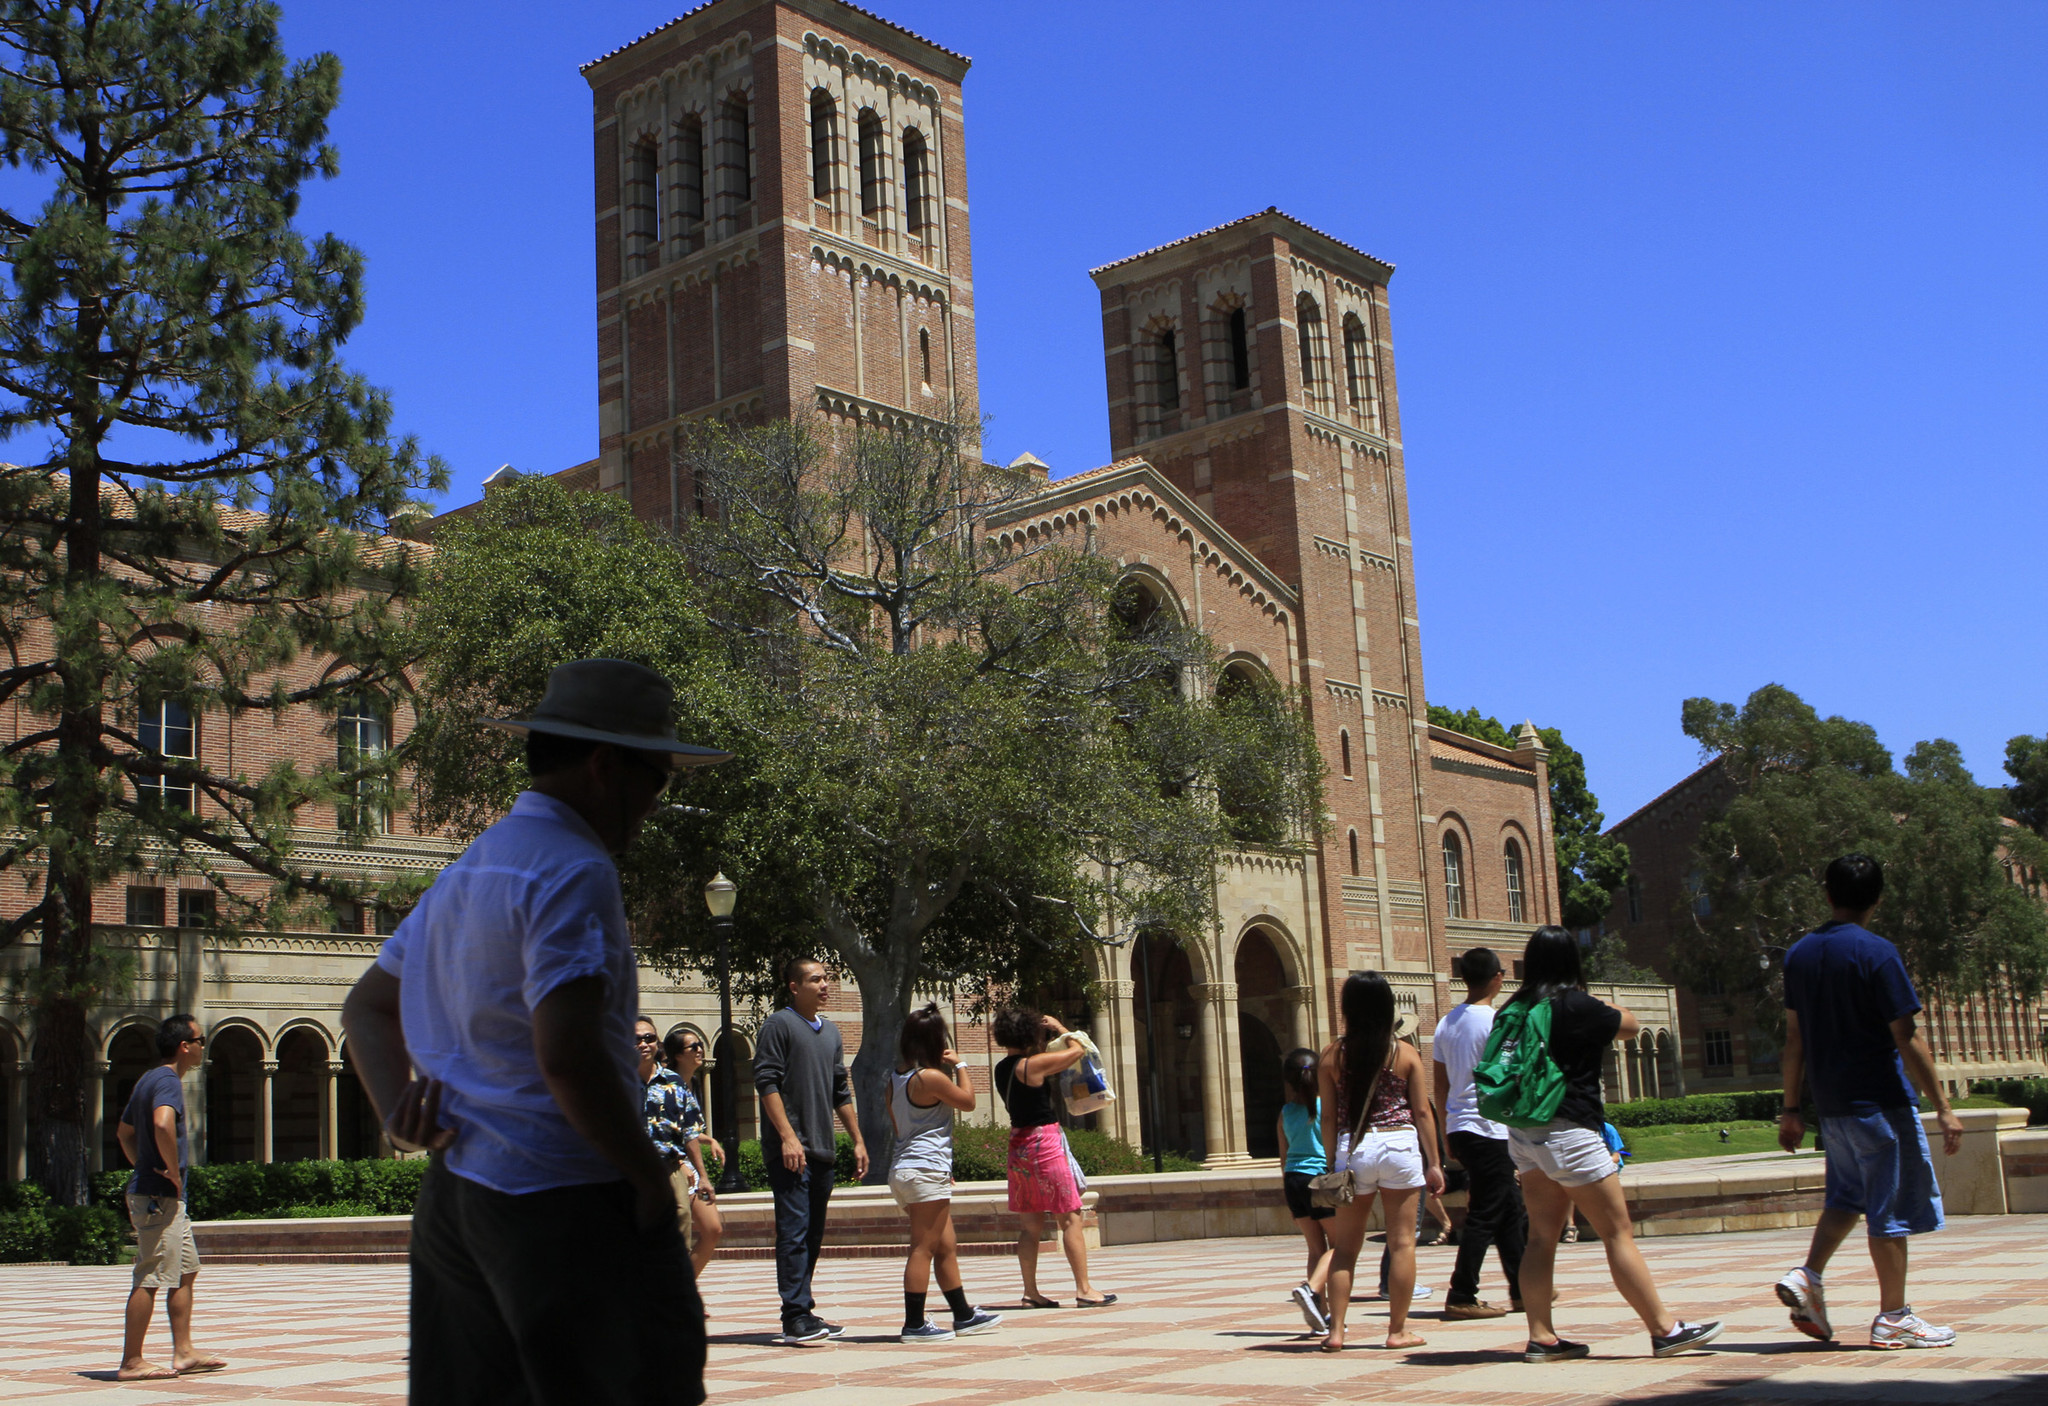 What does it take to get into a school like UCLA (University of California, Los Angelos)?